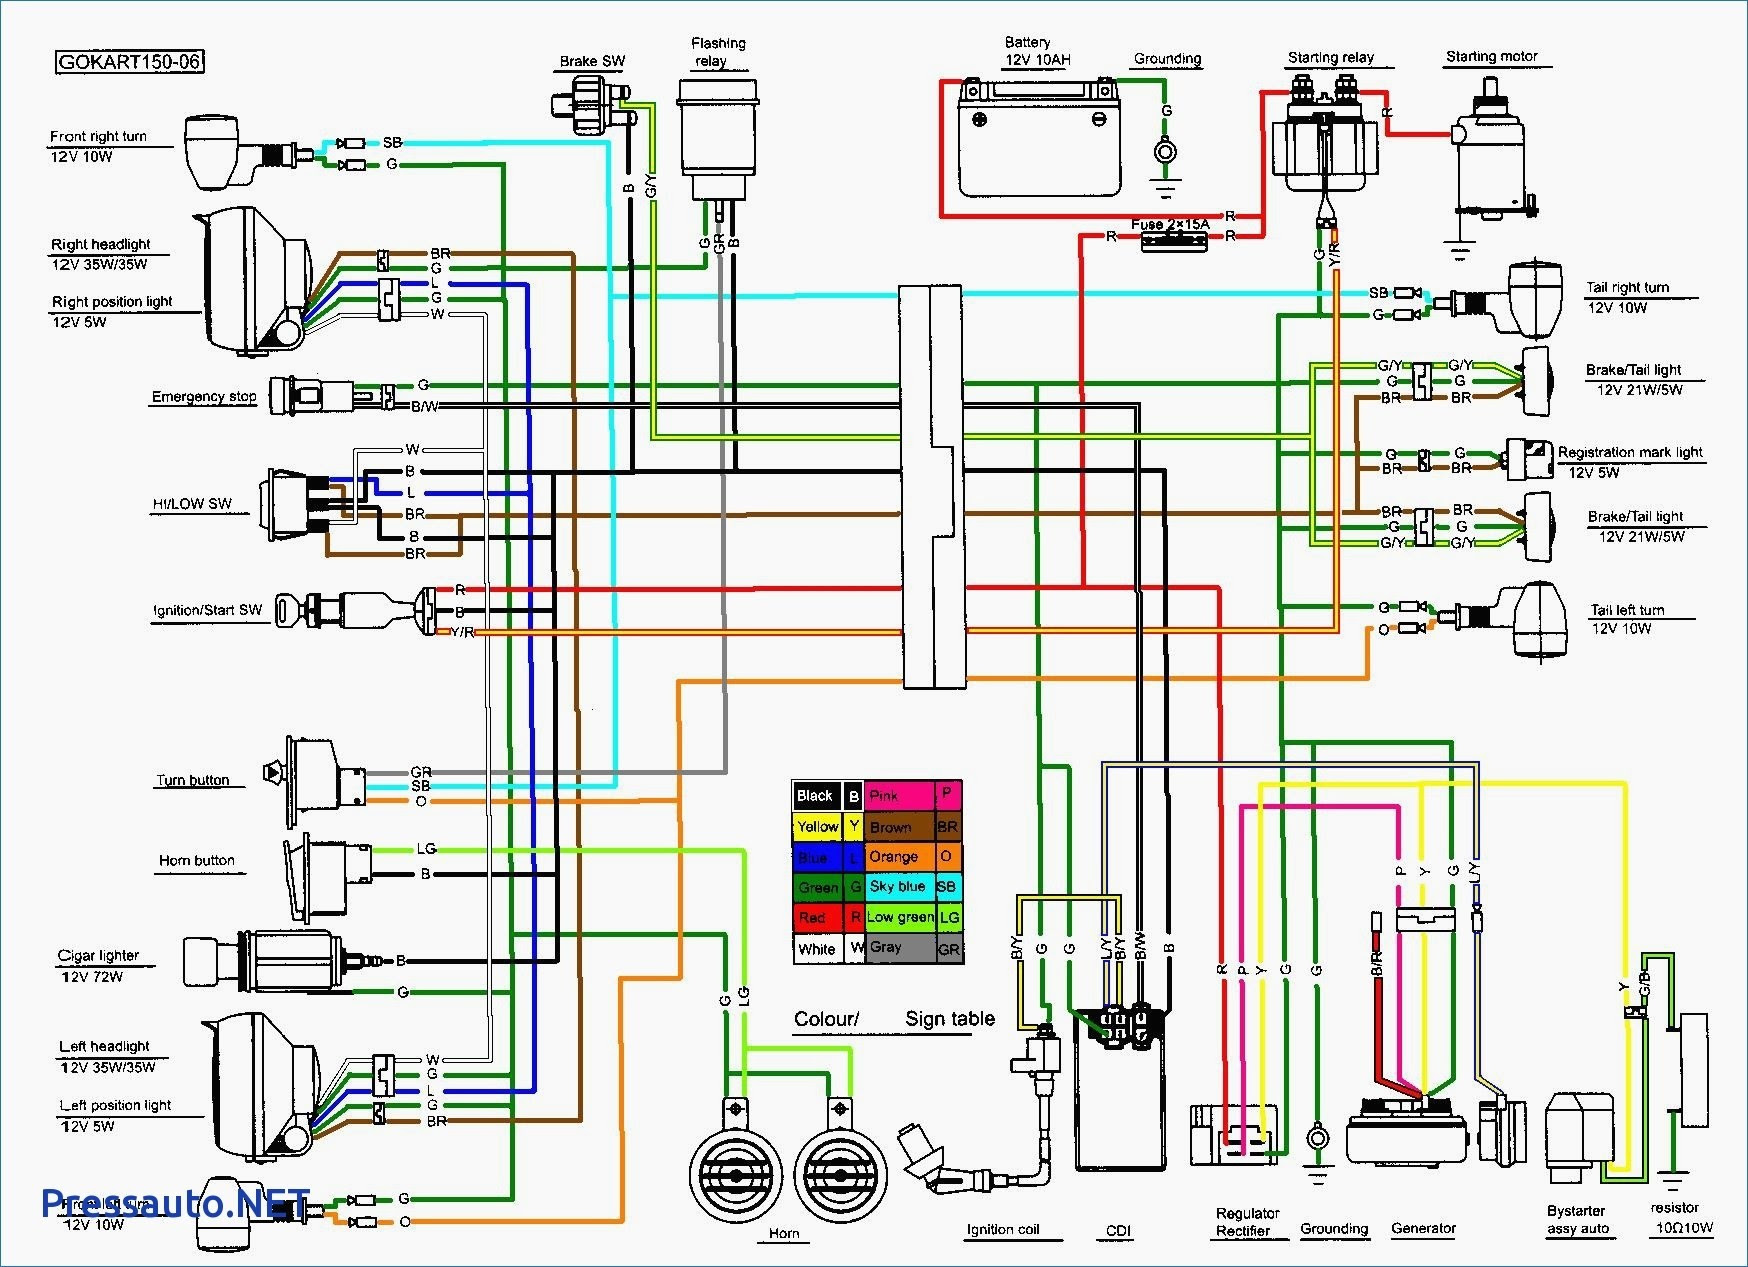 Diagram 110 Atv Cdi Wiring Diagram Full Version Hd Quality Wiring Diagram Diagramsfae Caditwergi It